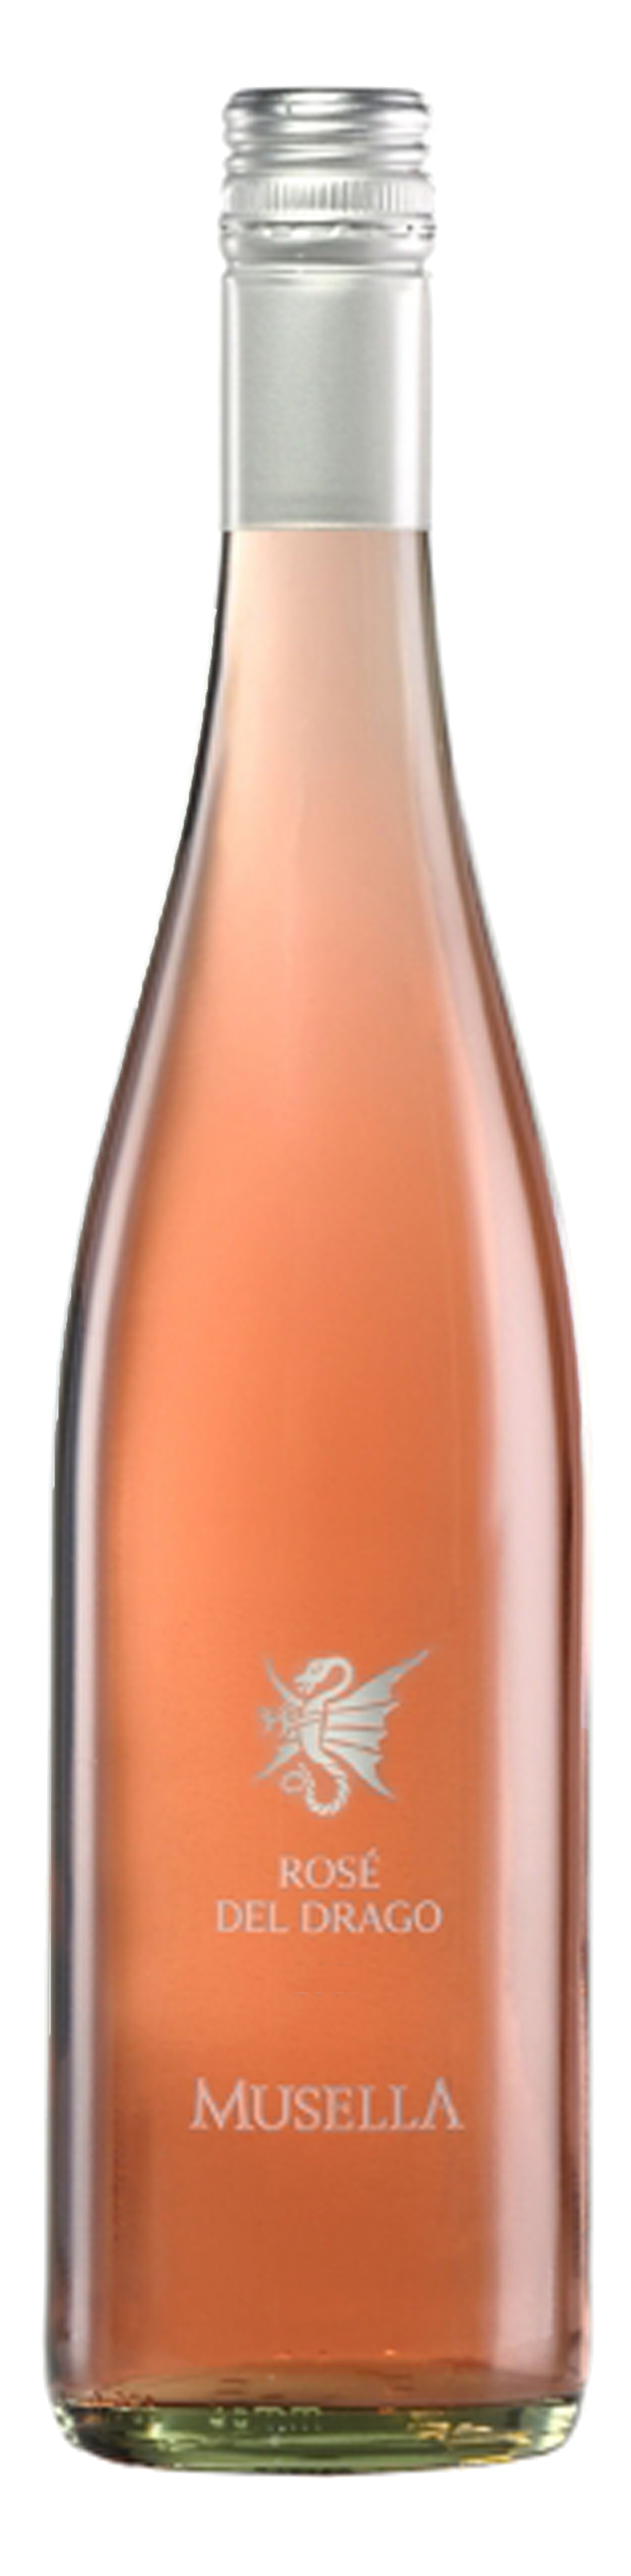 Image of product Rose del Drago